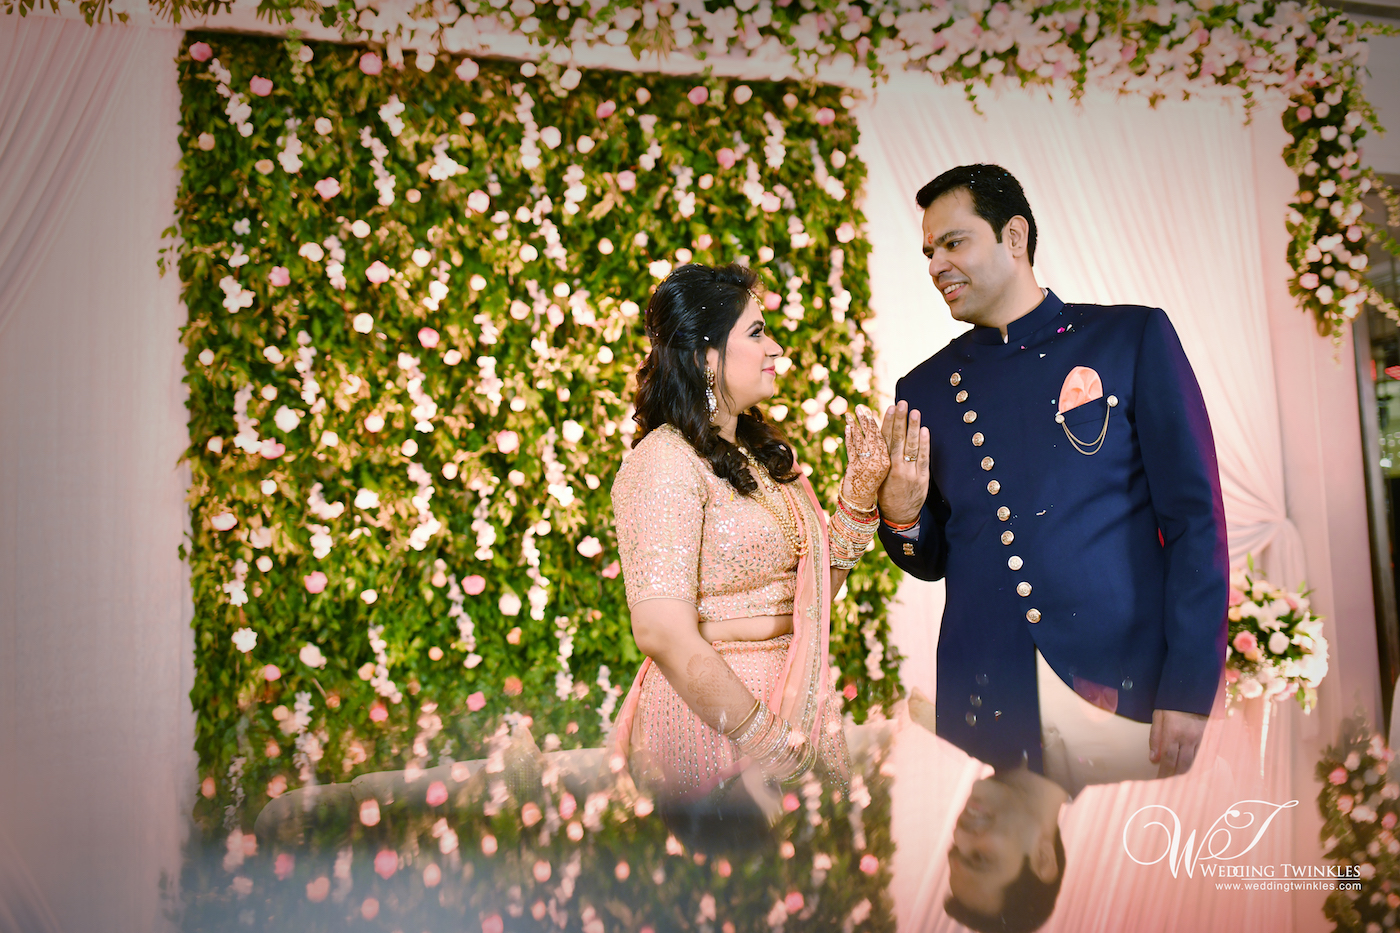 Engagement ceremony photography for Richa and Varun in Delhi